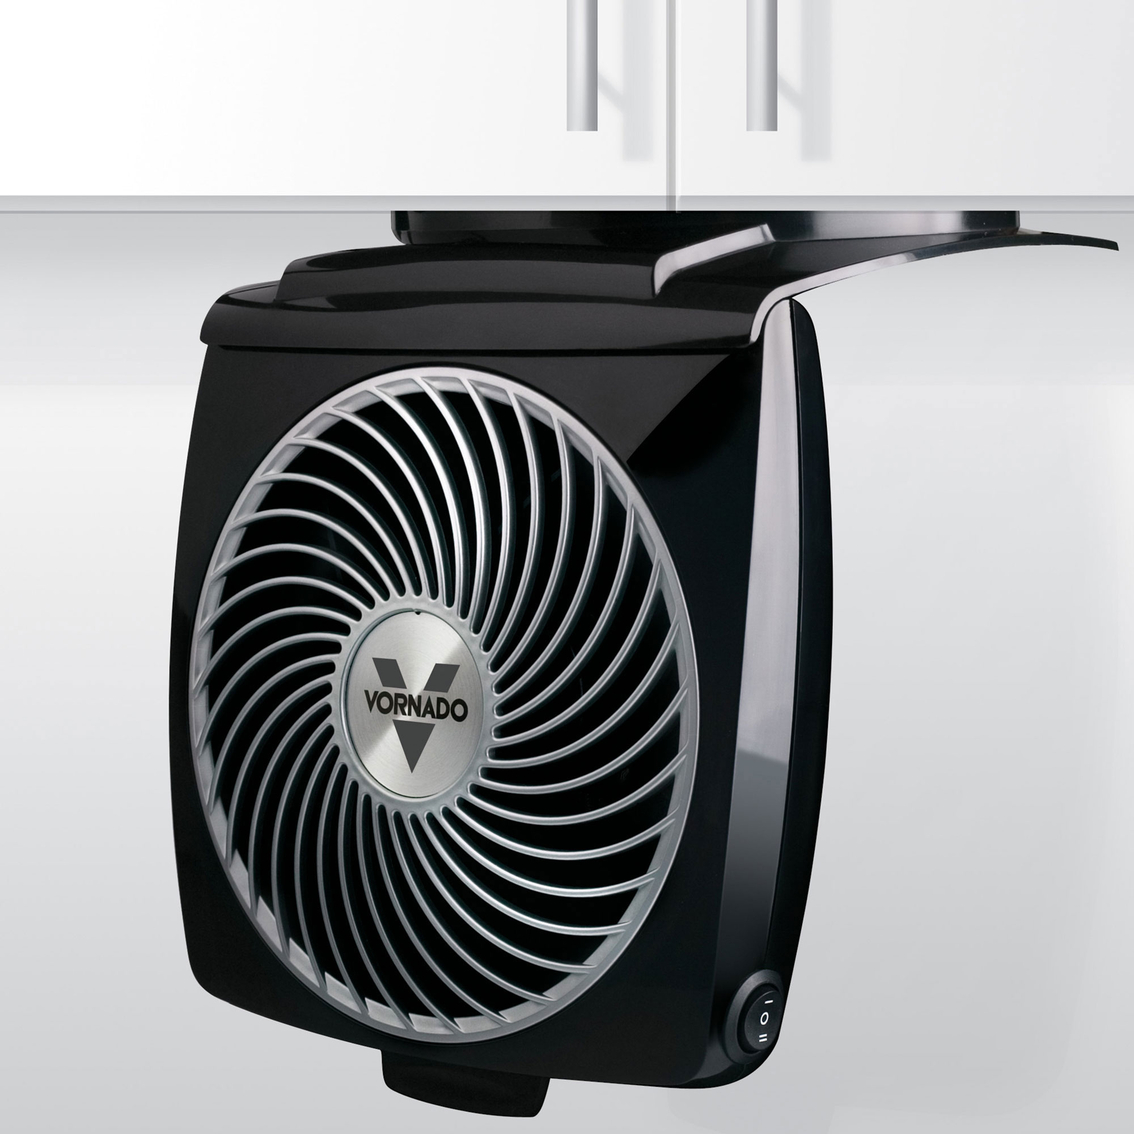 Vornado v103 under cabinet air circulator portable fans for Air circulation fans home